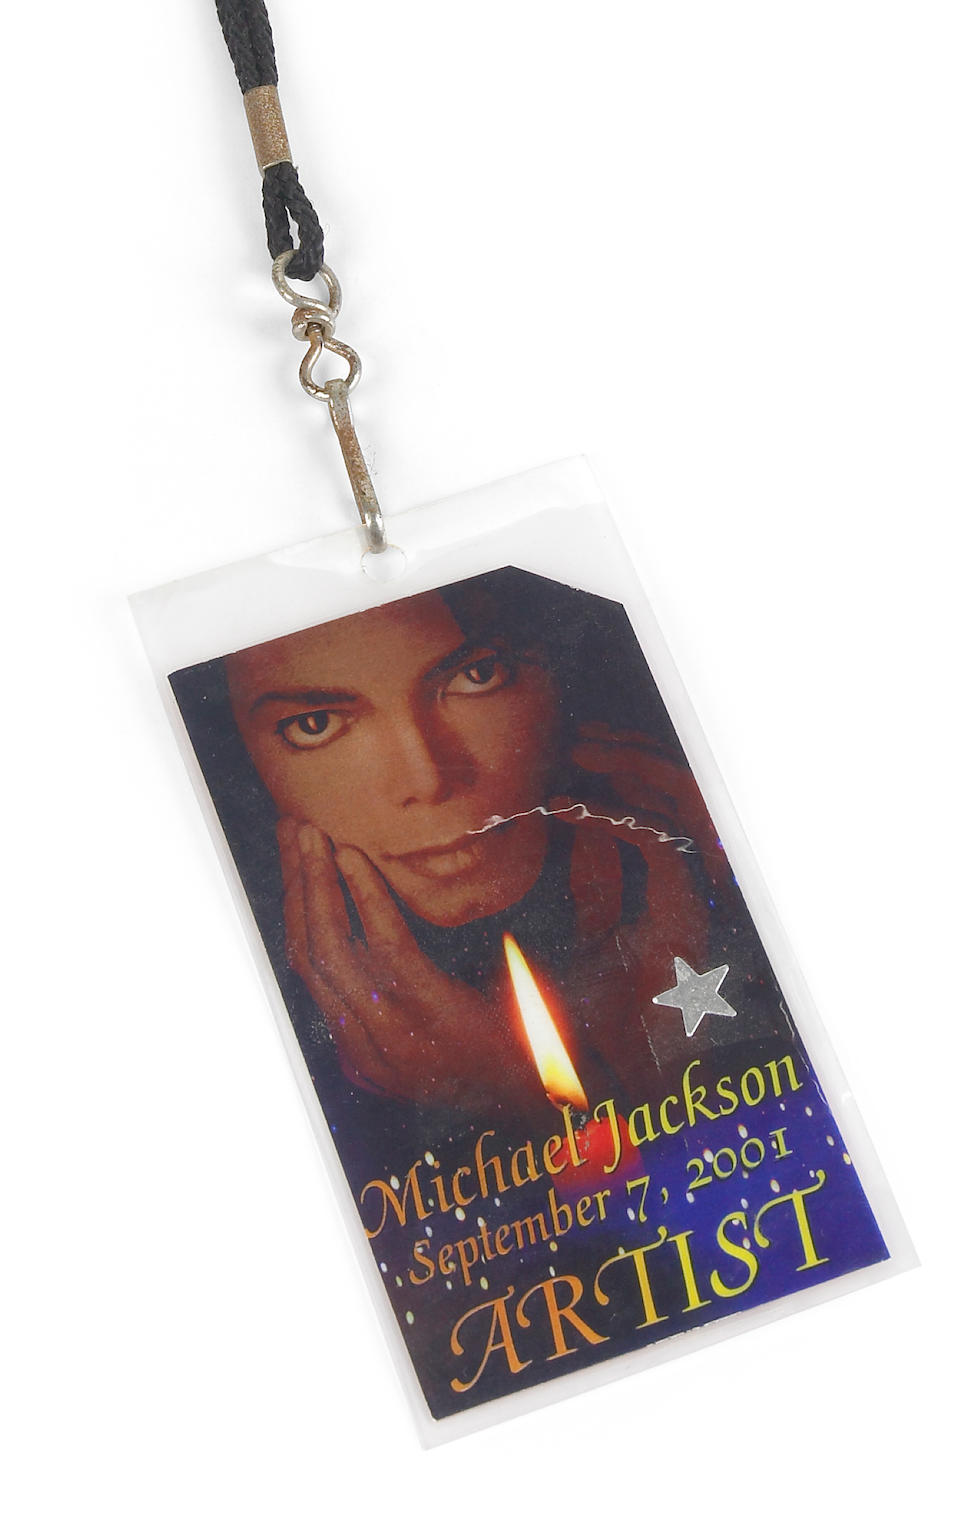 Michael Jackson signed backstage pass for his September 7, 2001 New York City concert